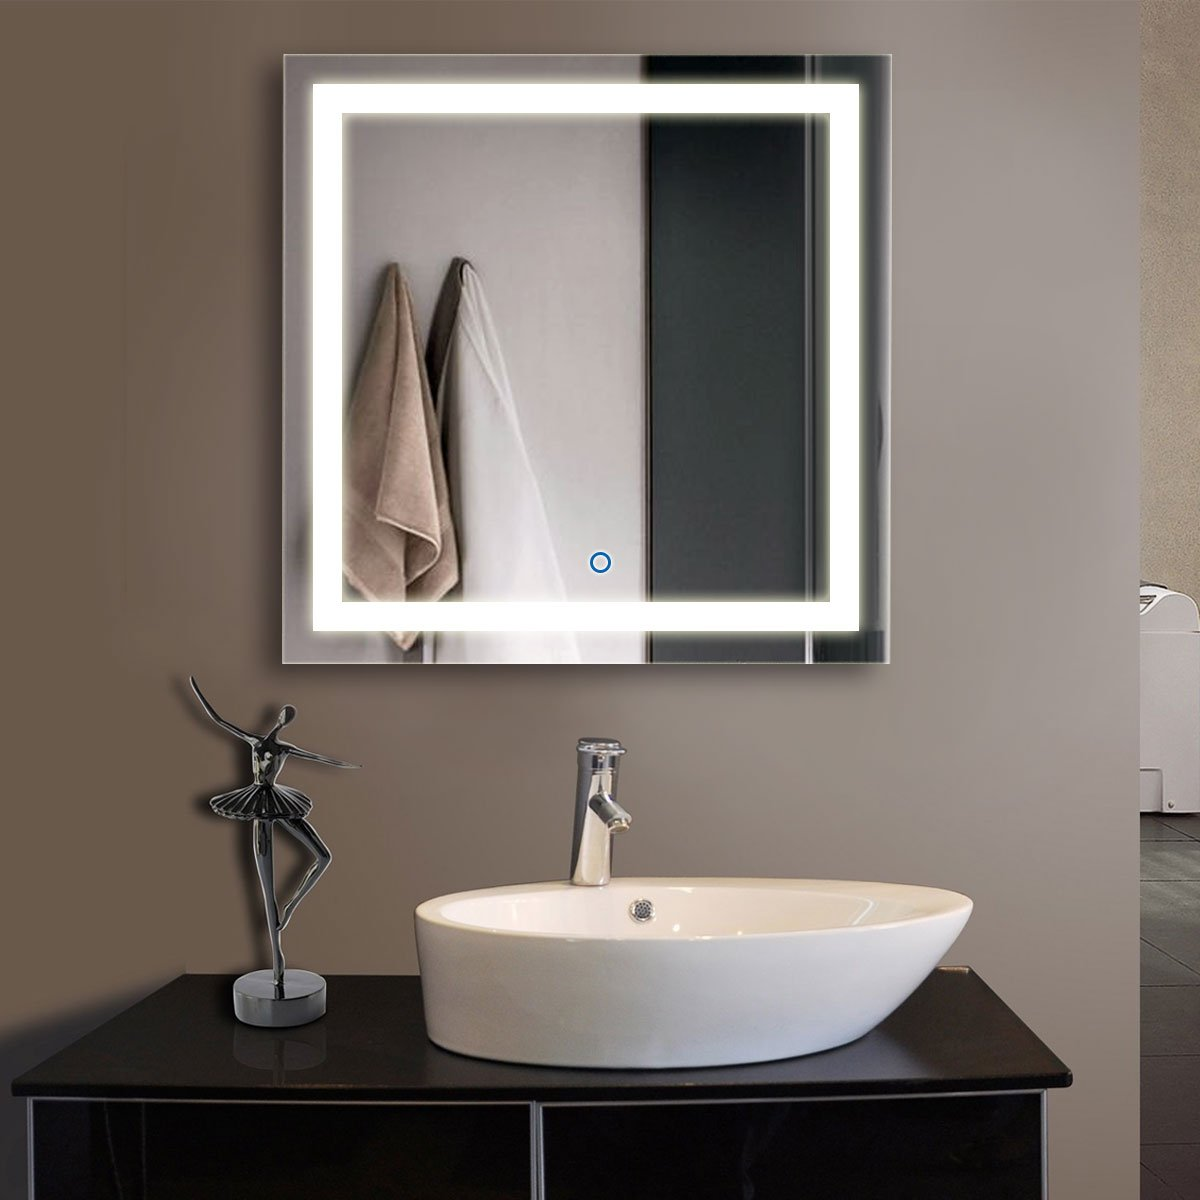 DECORAPORT 32 Inch 32 Inch Square Horizontal and Vertical LED Wall Mounted Lighted Vanity Bathroom Silvered Mirror with Touch Button (A-CK010-F) by Decoraport